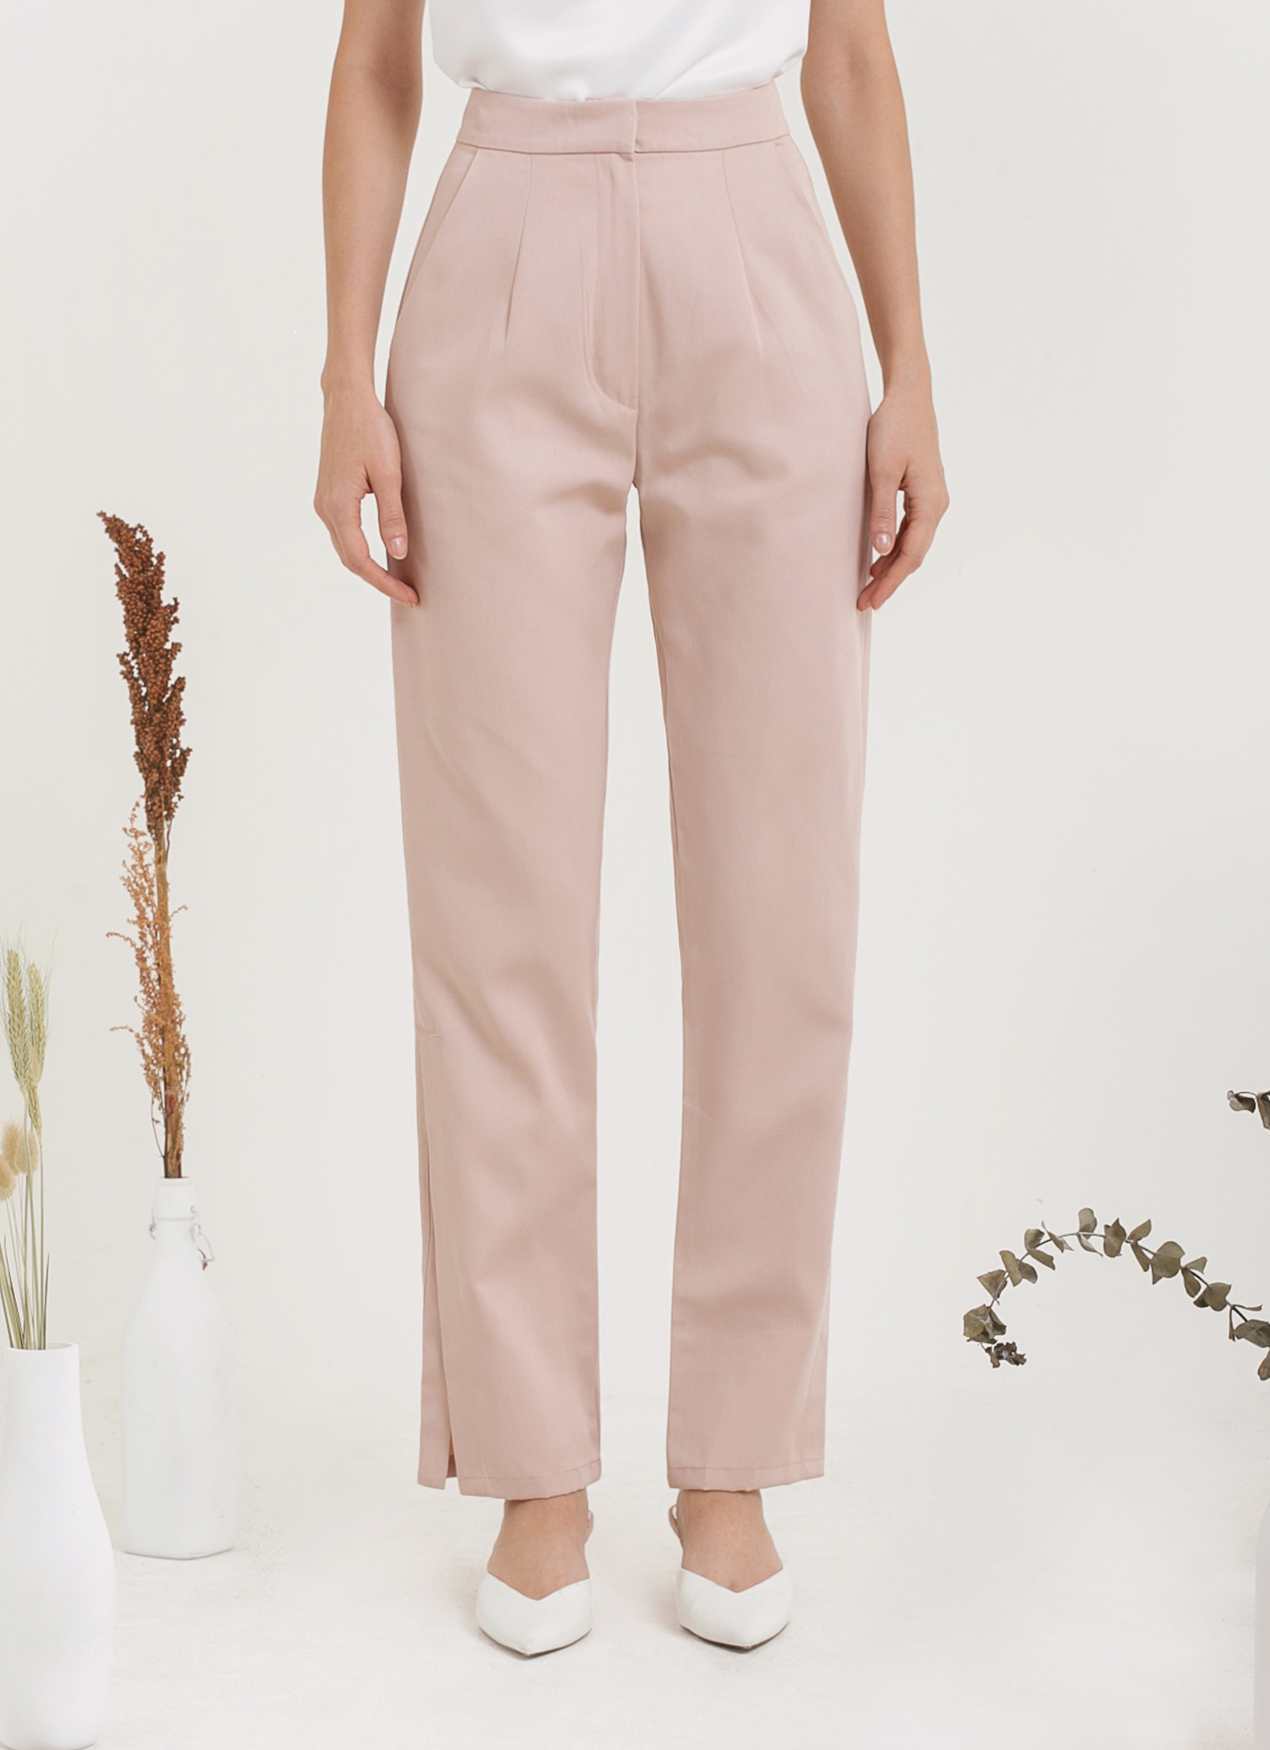 CLOTH INC Kato Slit Pants - Dusty Pink